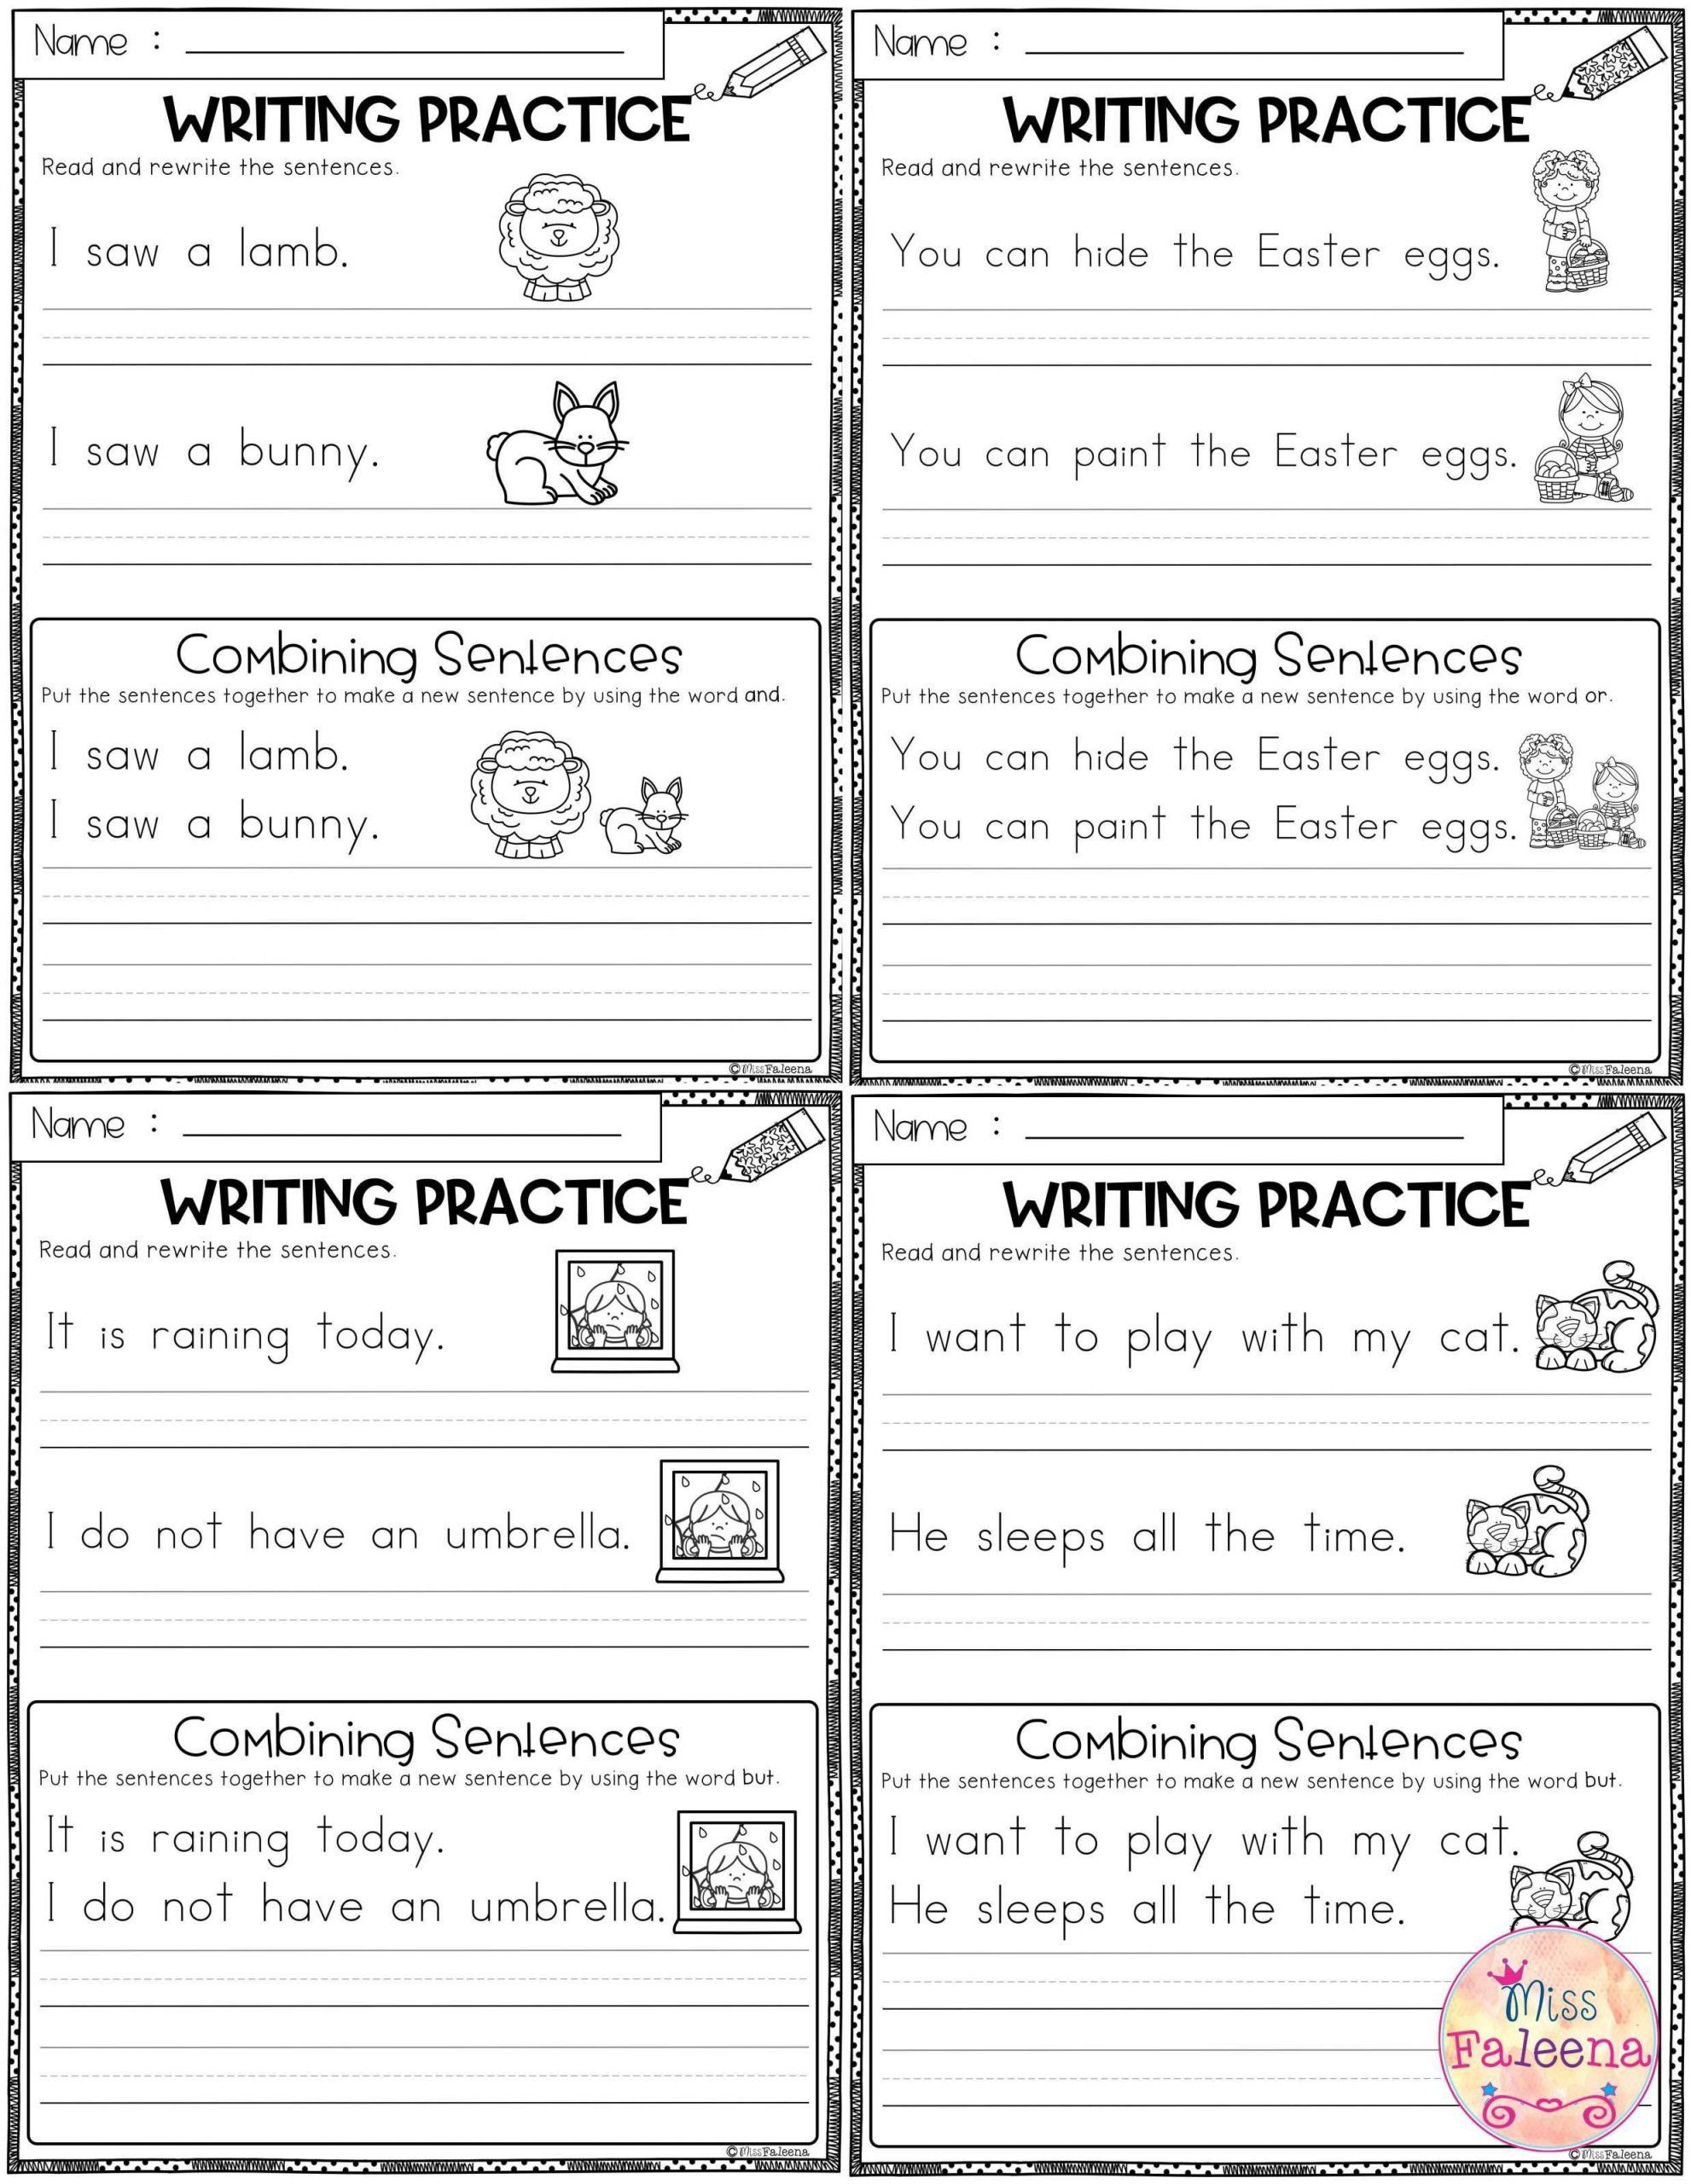 Kindergarten Sentence Writing Practice Worksheets Read Trace And Write Worksheets 1 5 Dell In 2020 Writing Practice Writing Practice Worksheets Name Writing Practice [ 2560 x 1982 Pixel ]